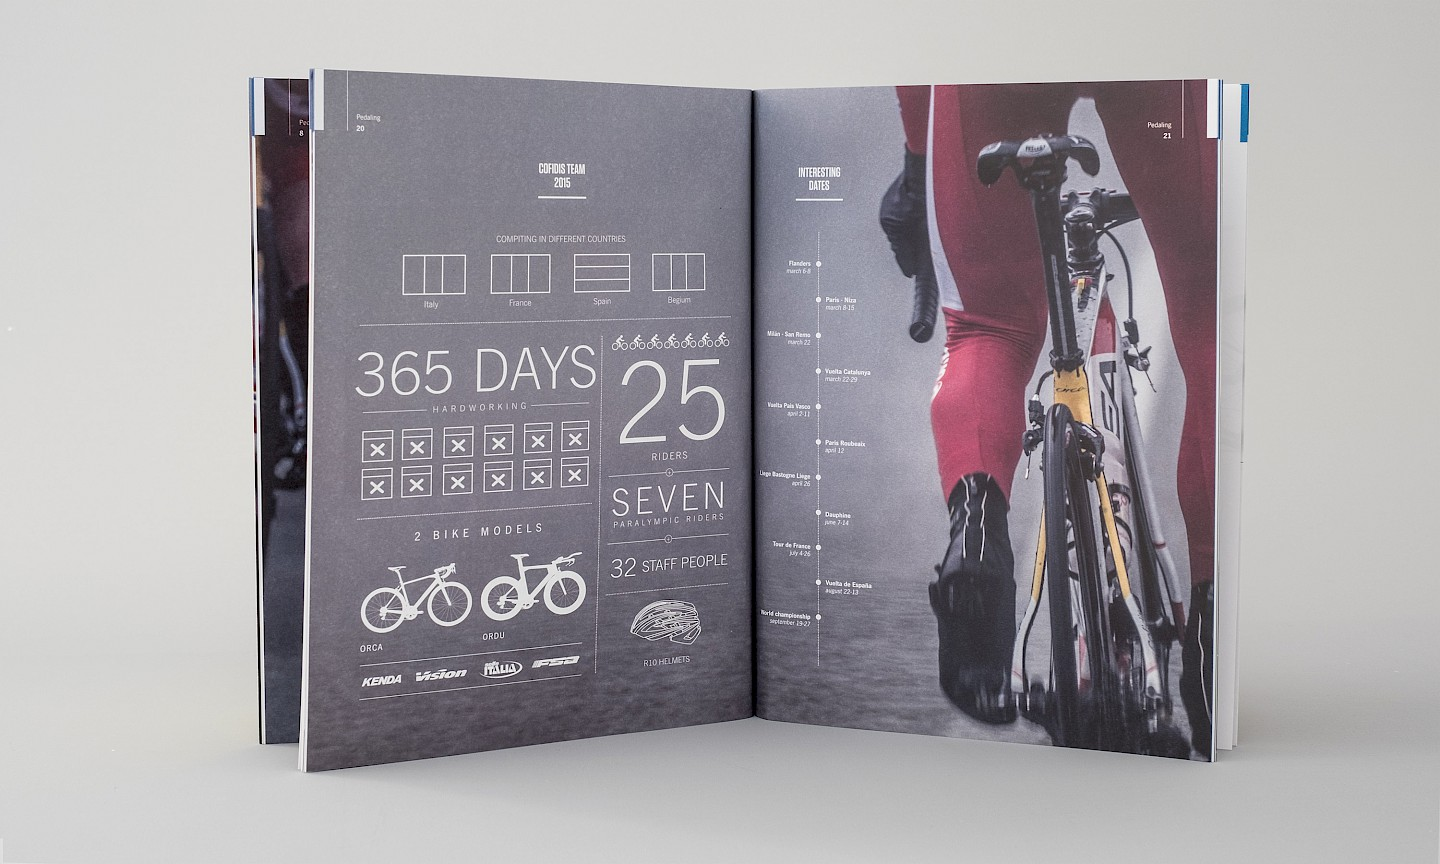 spaces sports lifestyle print orbea magazine move branding 09 design narrative